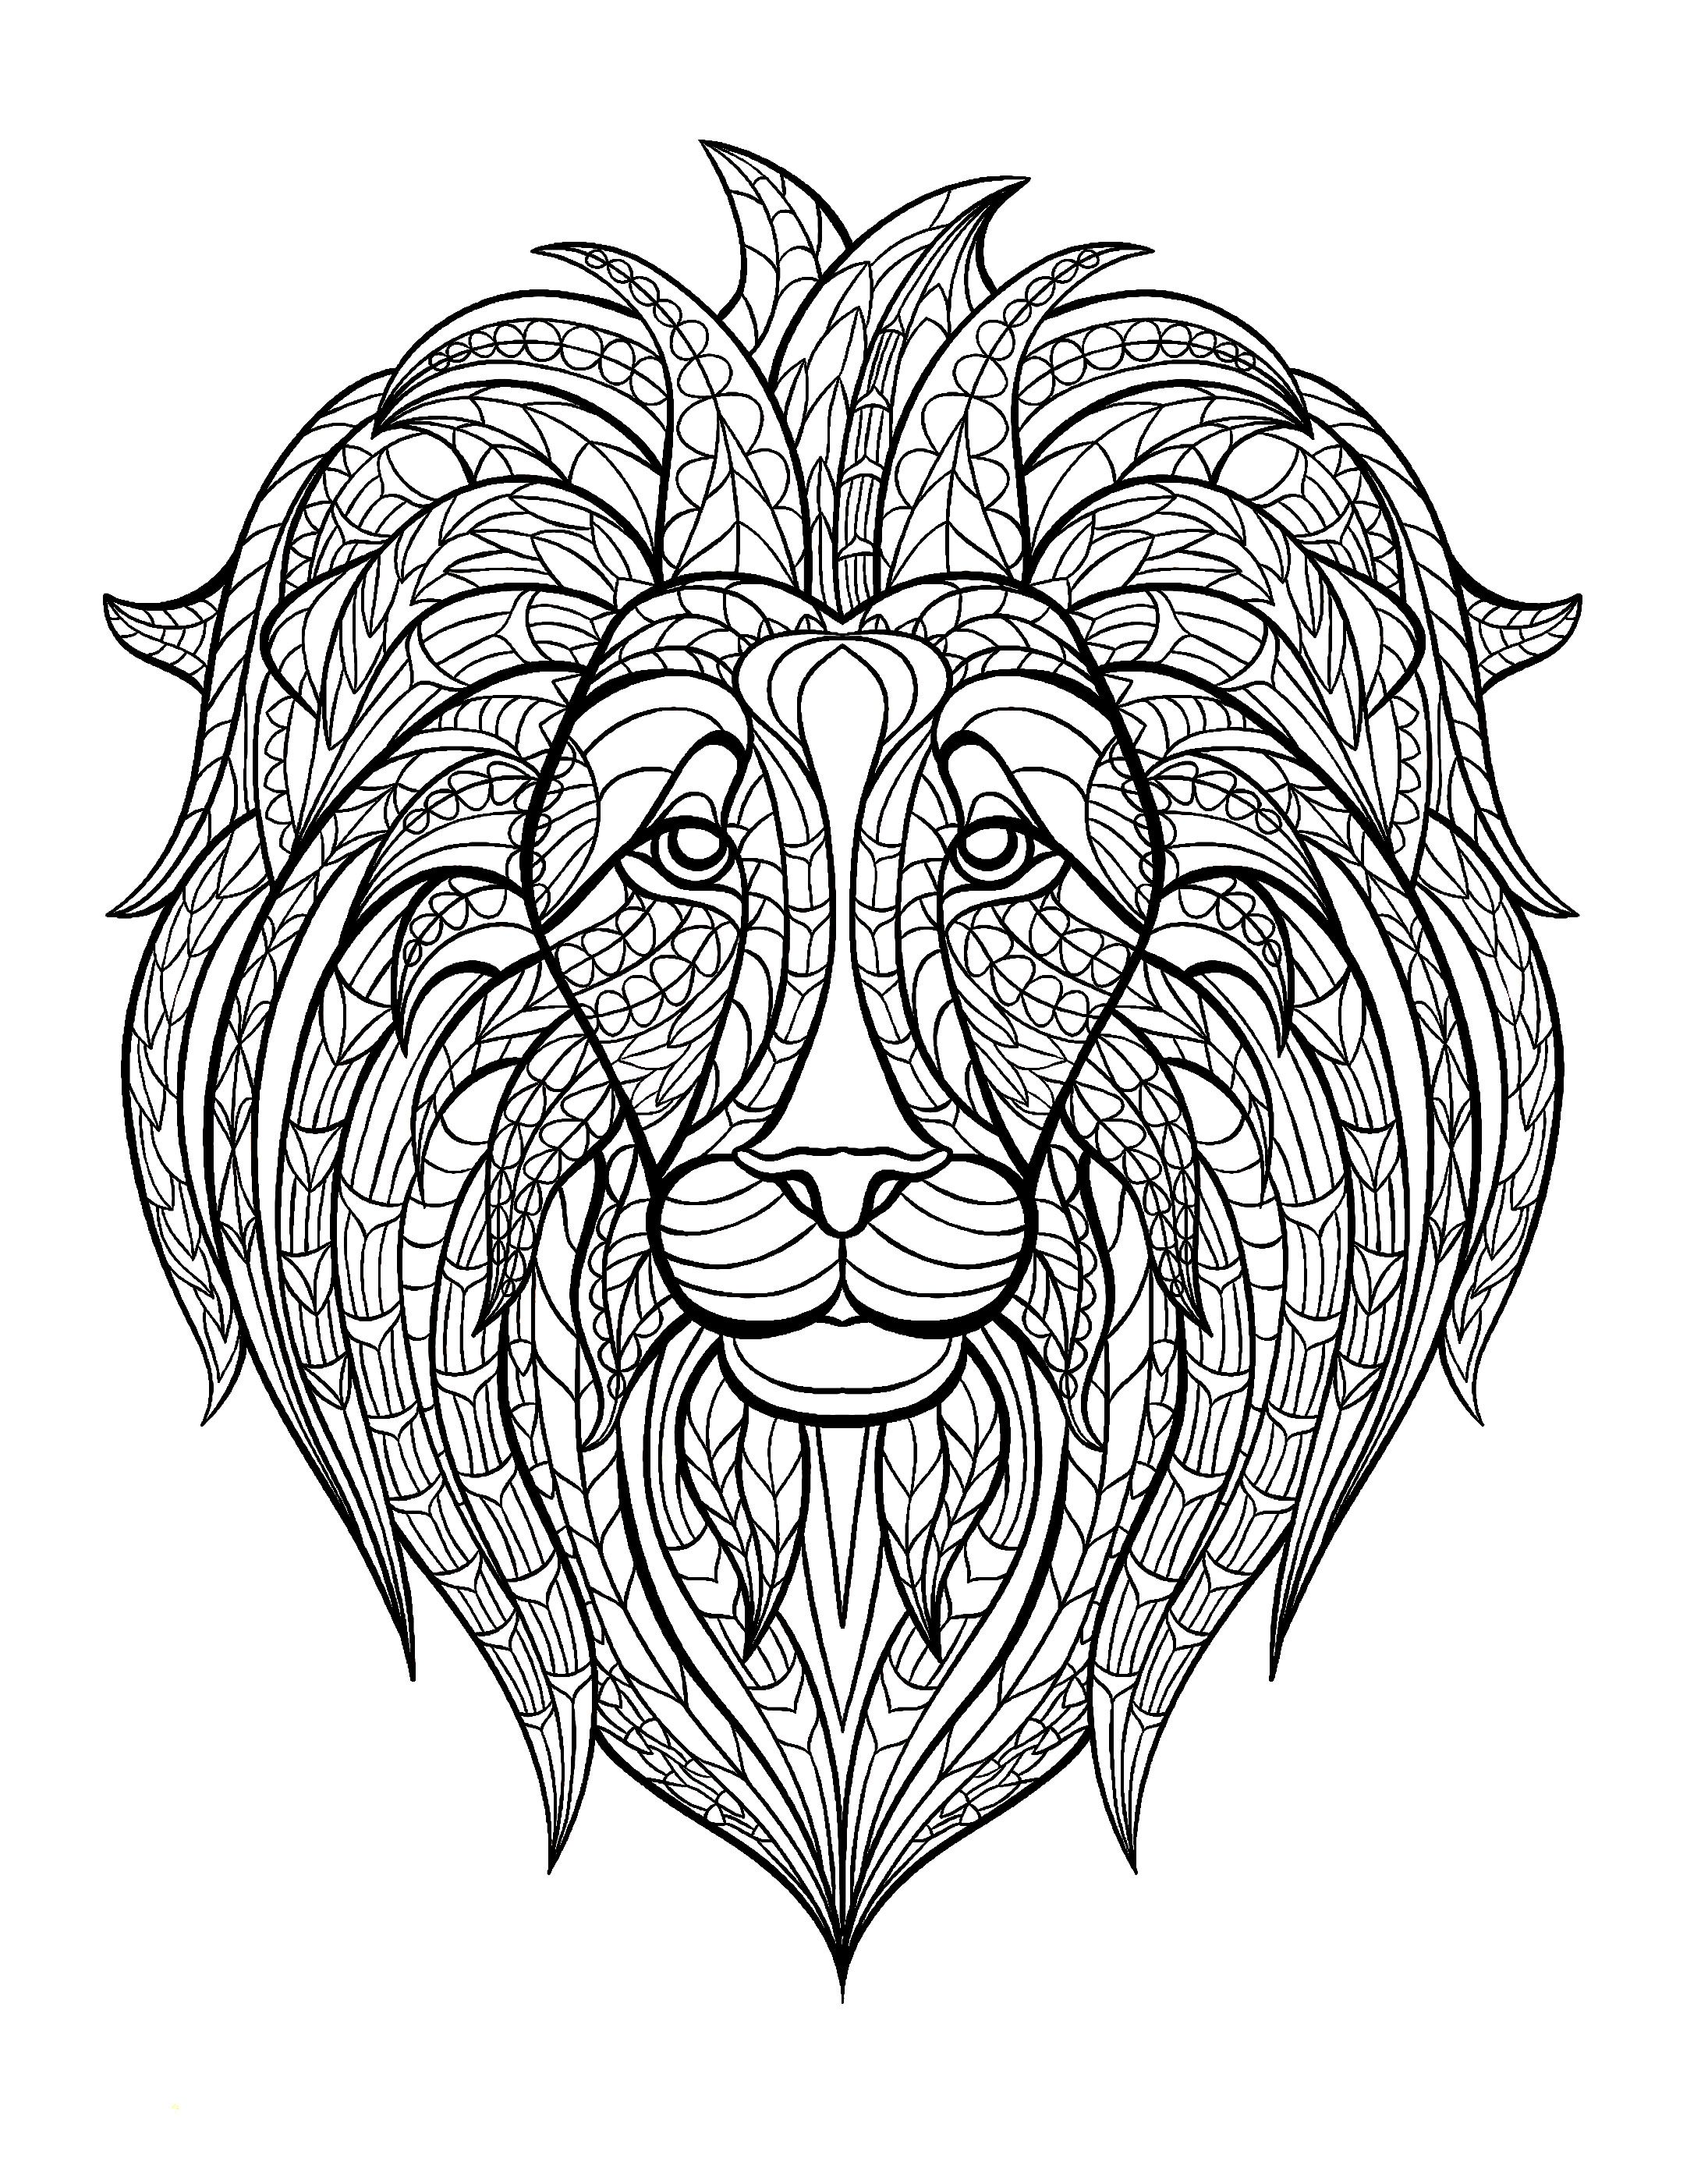 Coloring Pages Lion Head Coloring Page coloring page adult lion head free sample join my grown